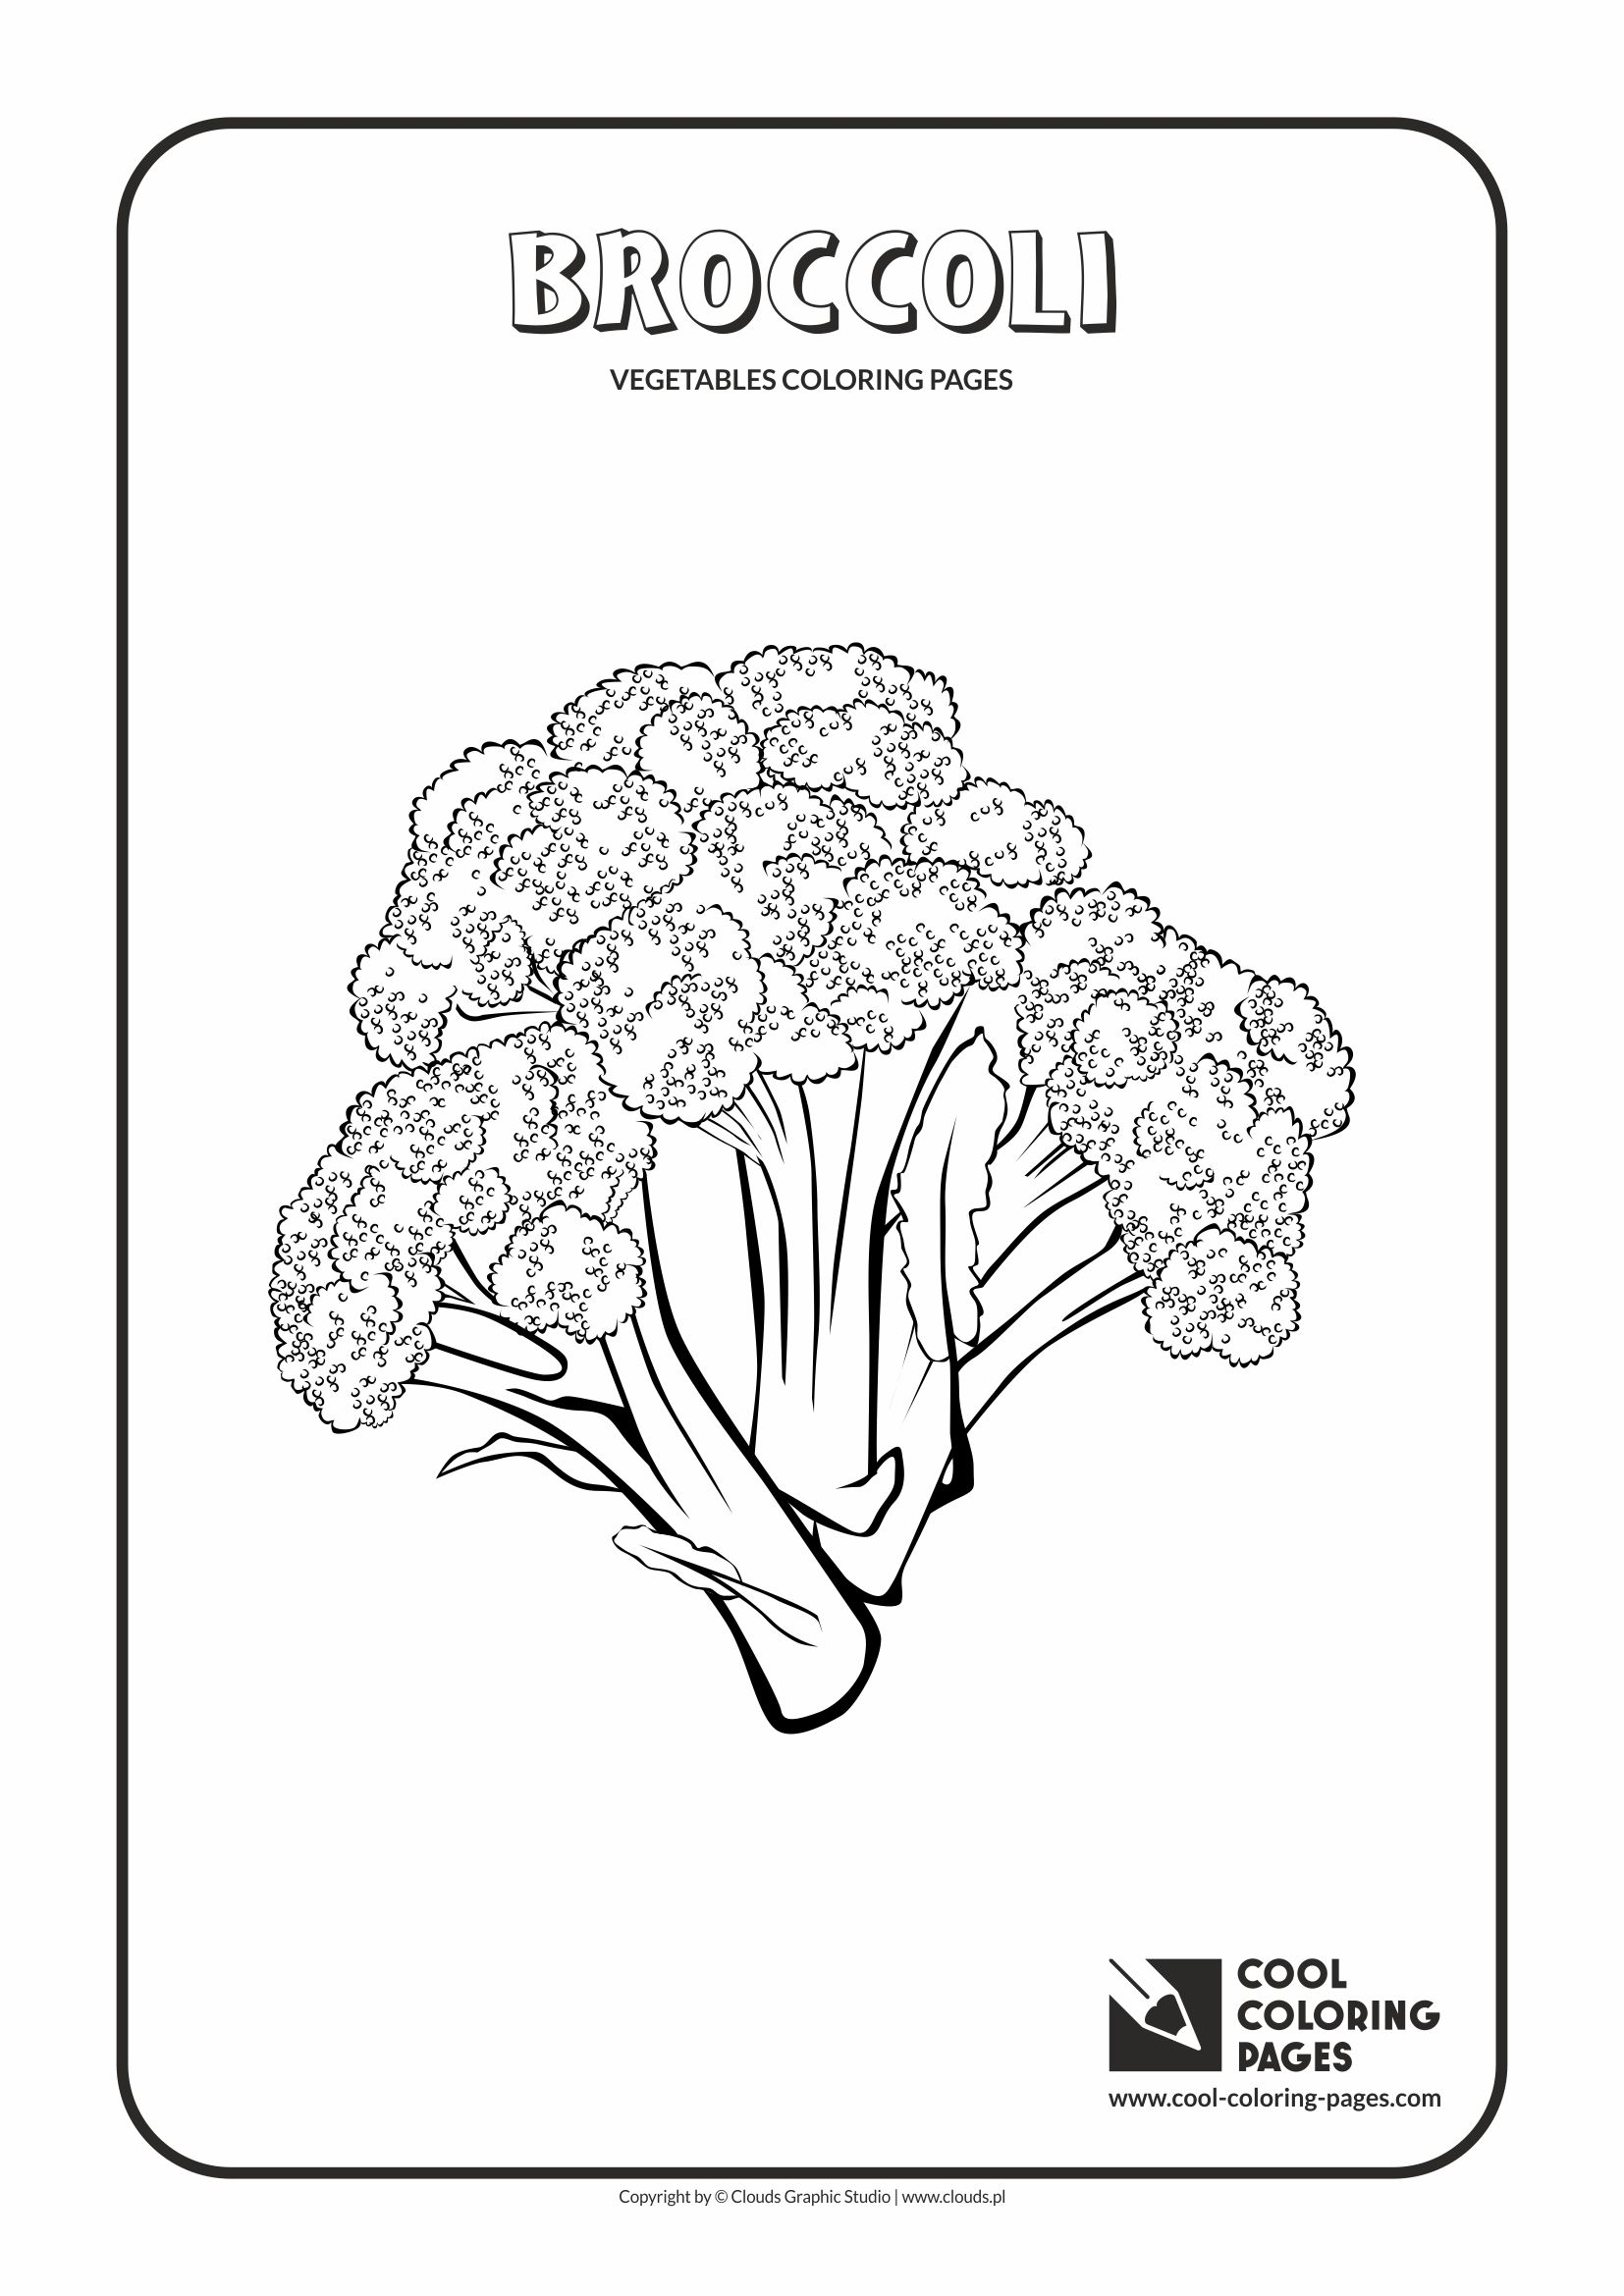 Cool Coloring Pages Vegetables